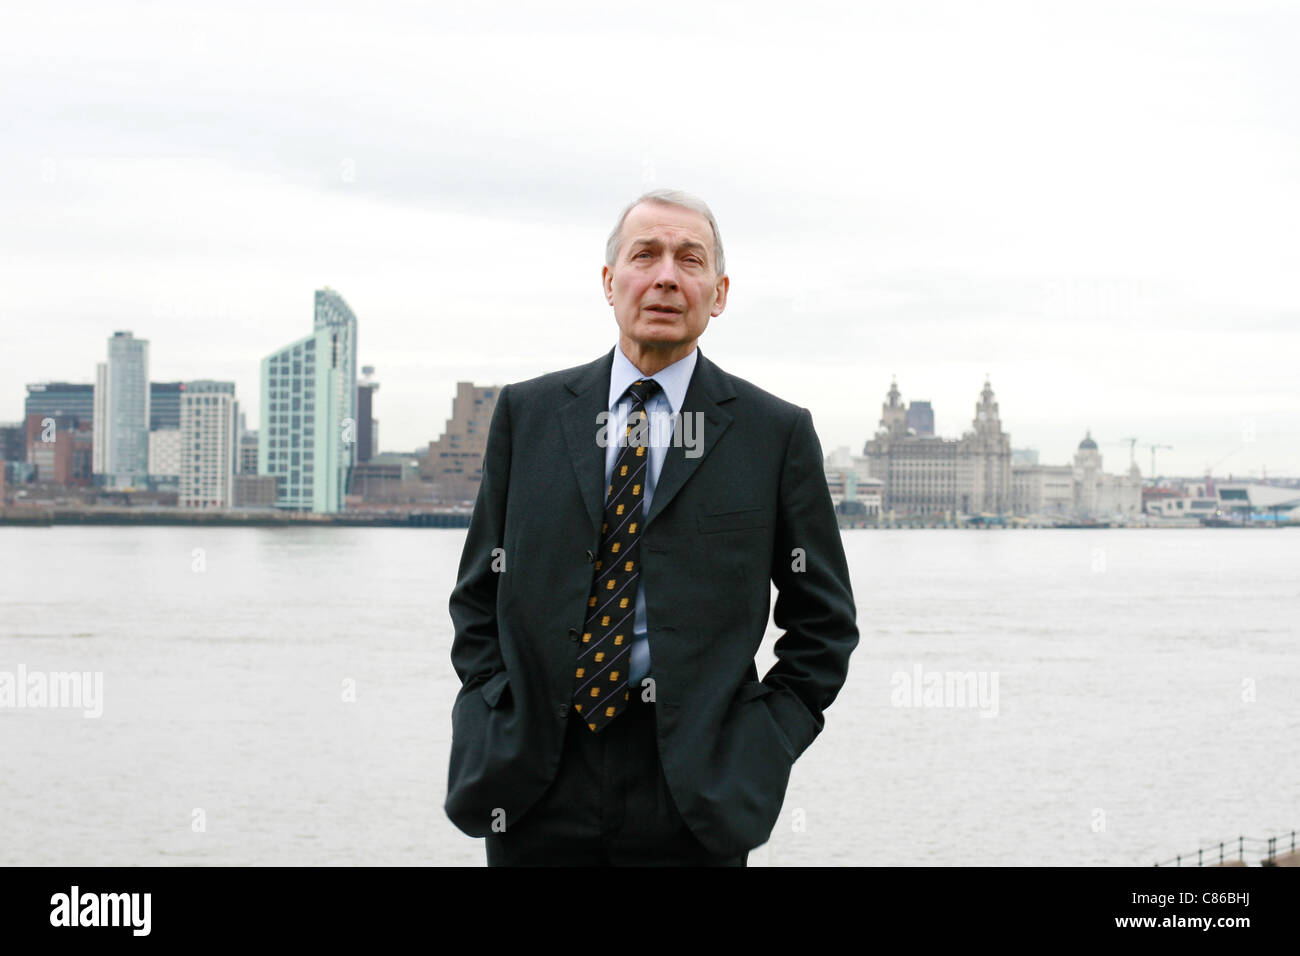 MP Frank Field stands in his constituency, Birkenhead, overlooking the Mersey River and Liverpool Stock Photo